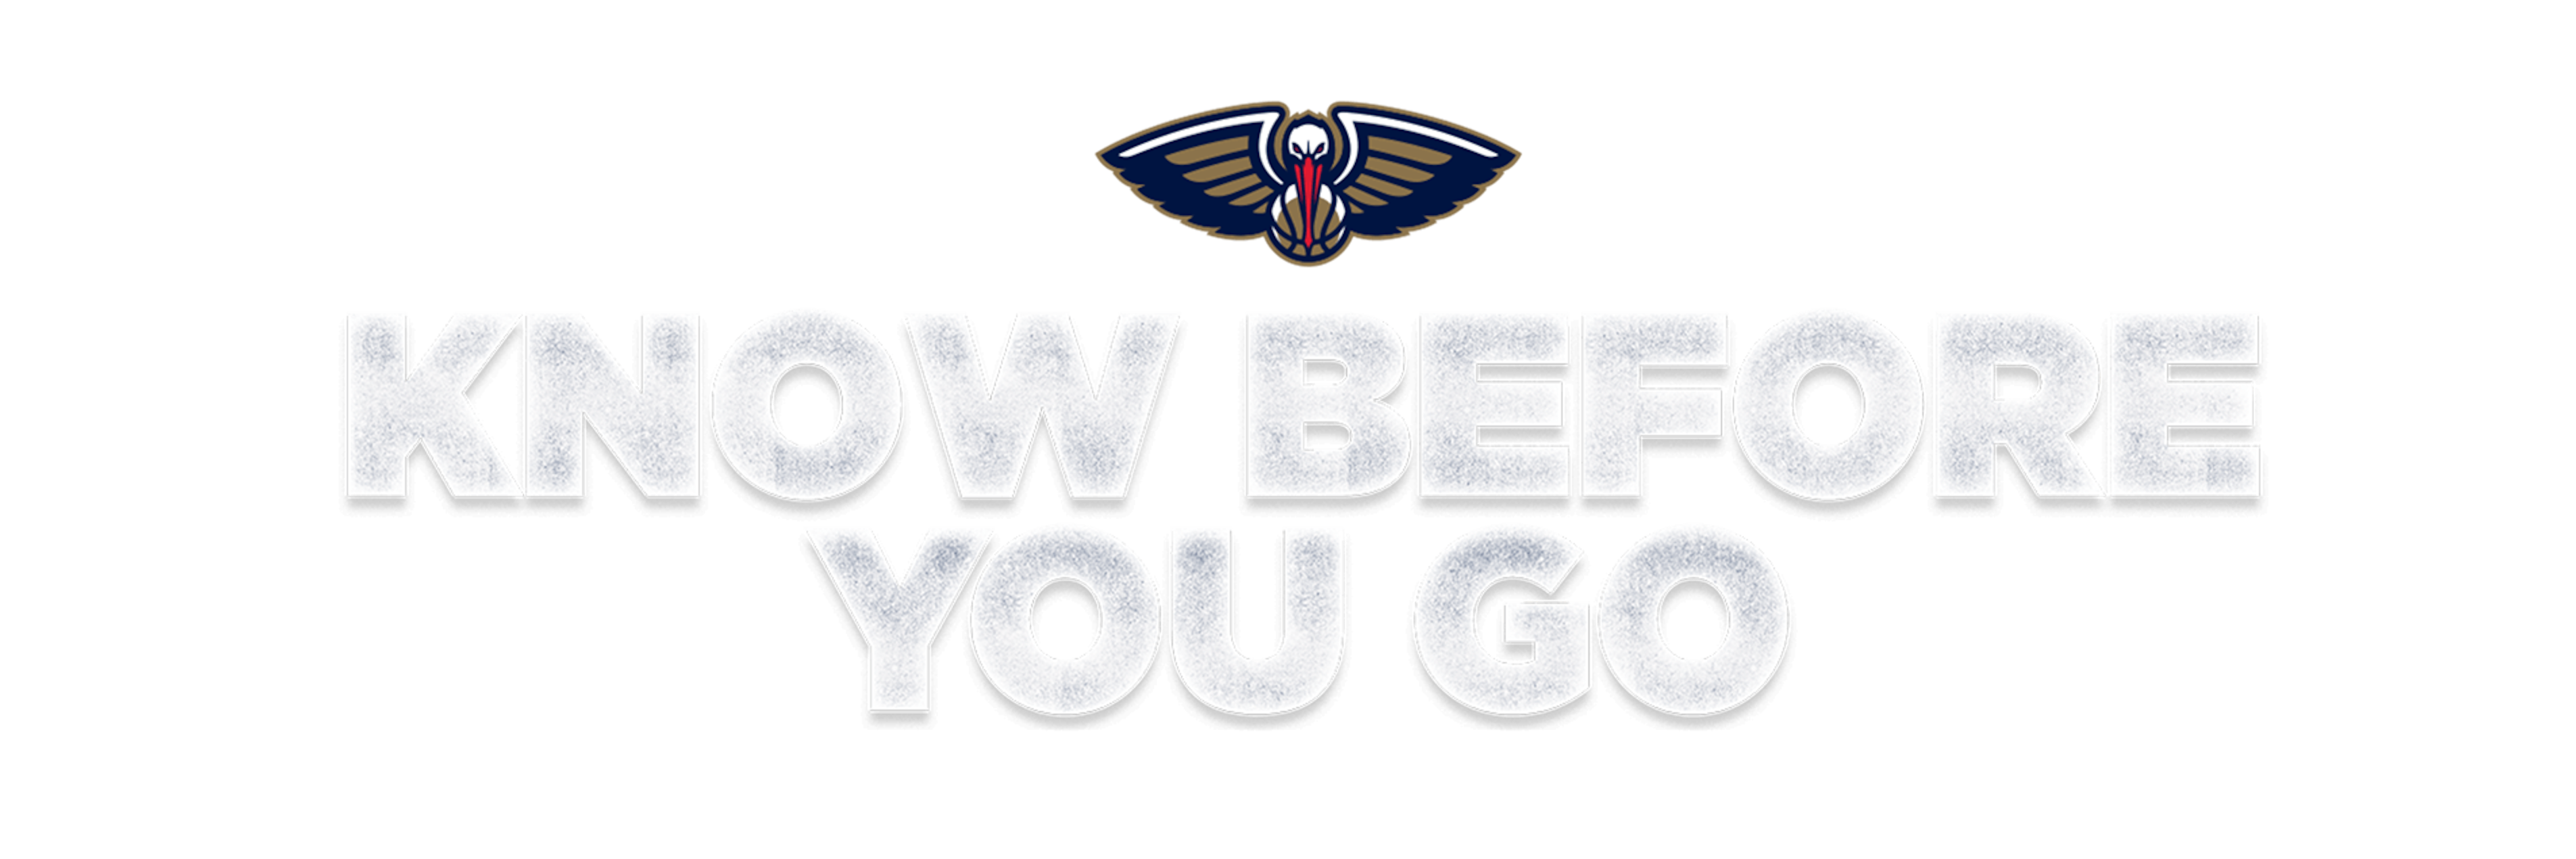 Know Before You Go - New Orleans Pelicans